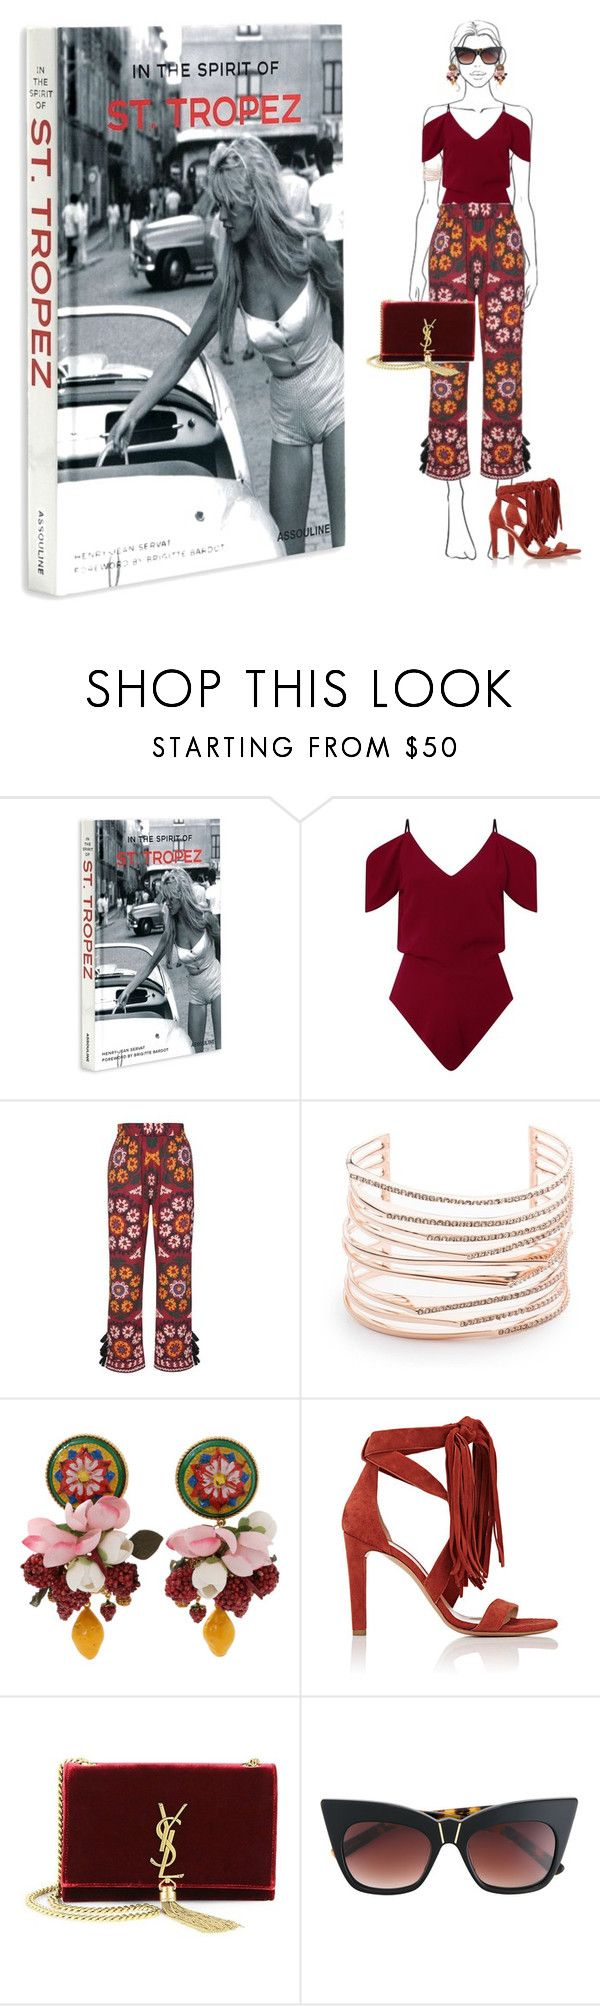 """Saint Tropez Travel Outfit"" by salbiylaazzara-fashion on Polyvore featuring Assouline Publishing, Roland Mouret, Alexis Bittar, Dolce&Gabbana, Chloé, Yves Saint Laurent, Pared, sainttropez and outfitsfortravel"